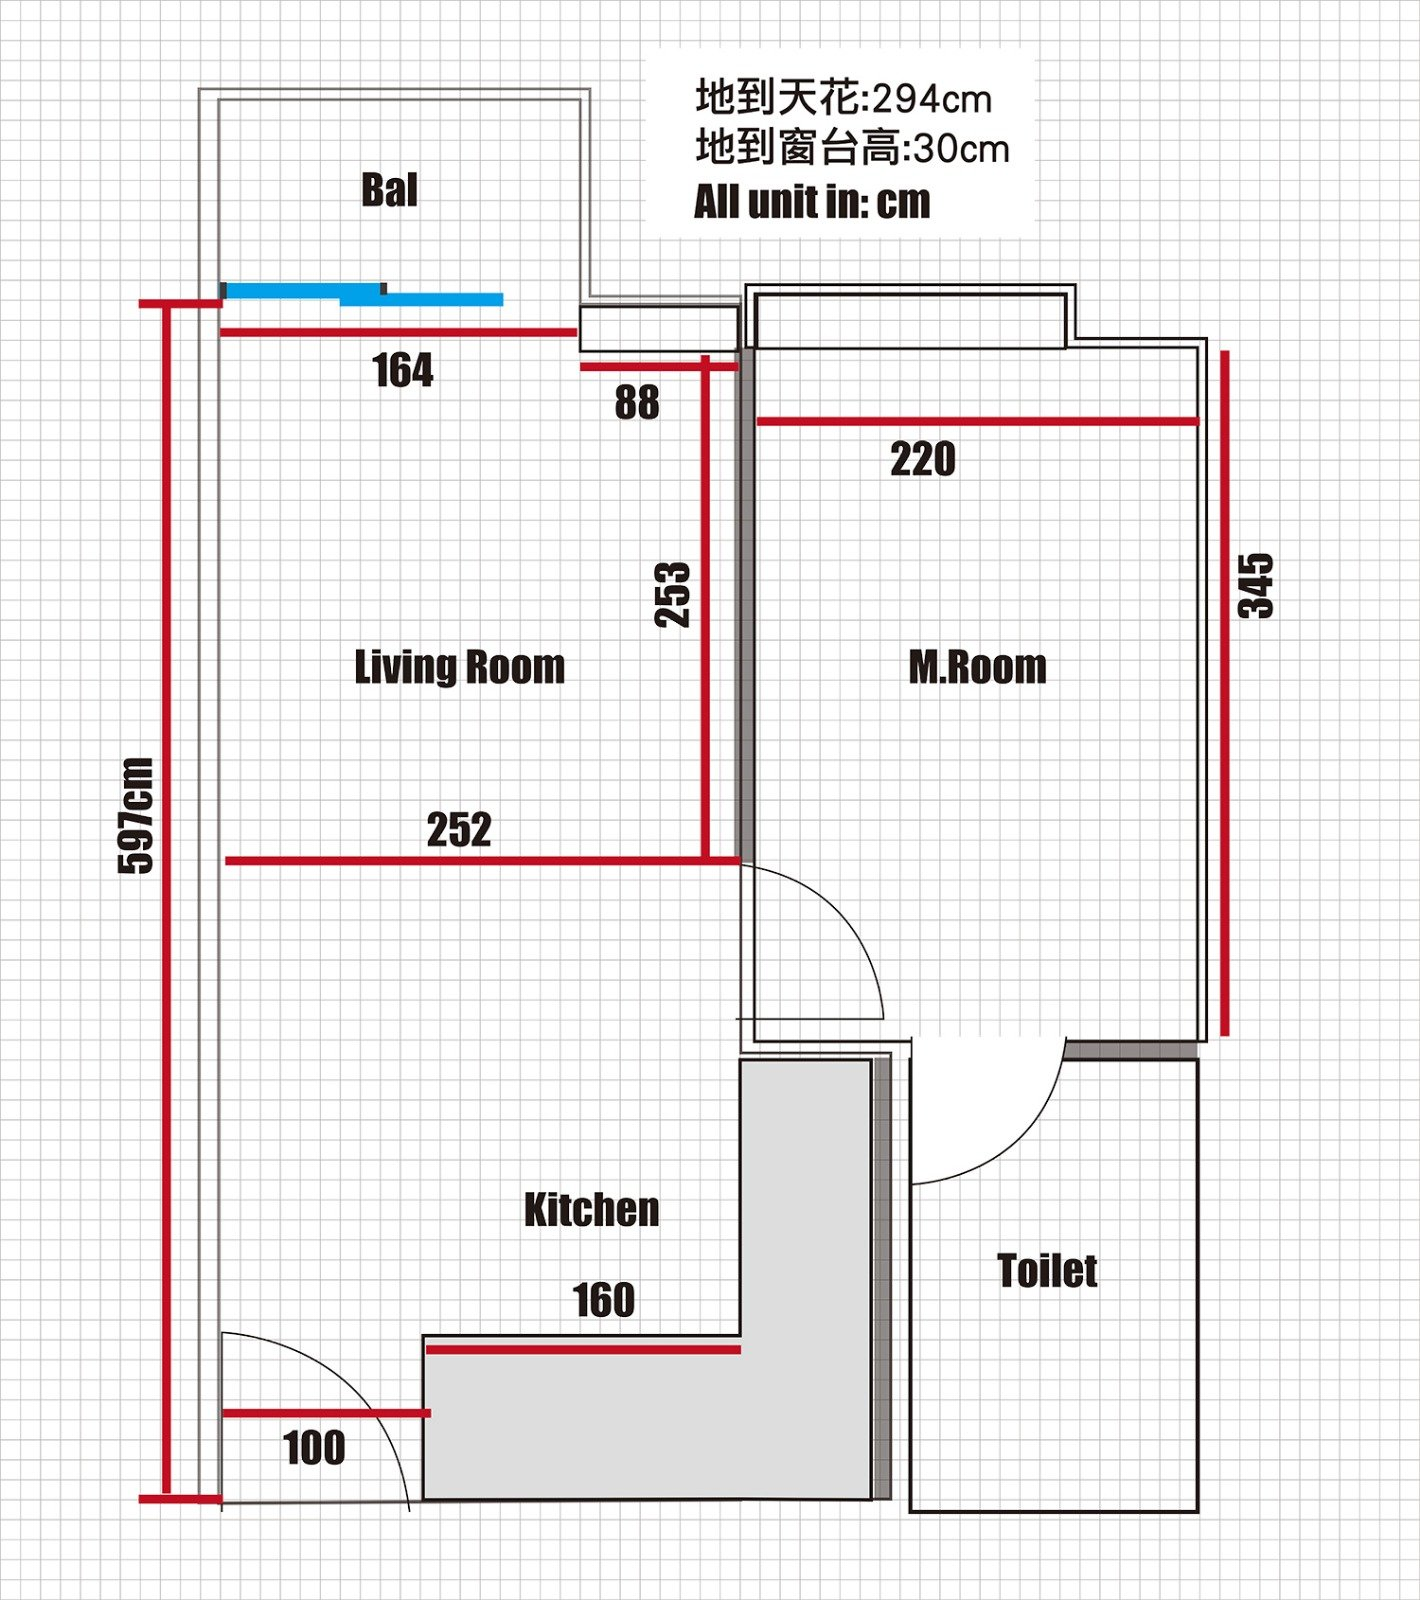 bid_deco_floorplan_1553355878.jpg